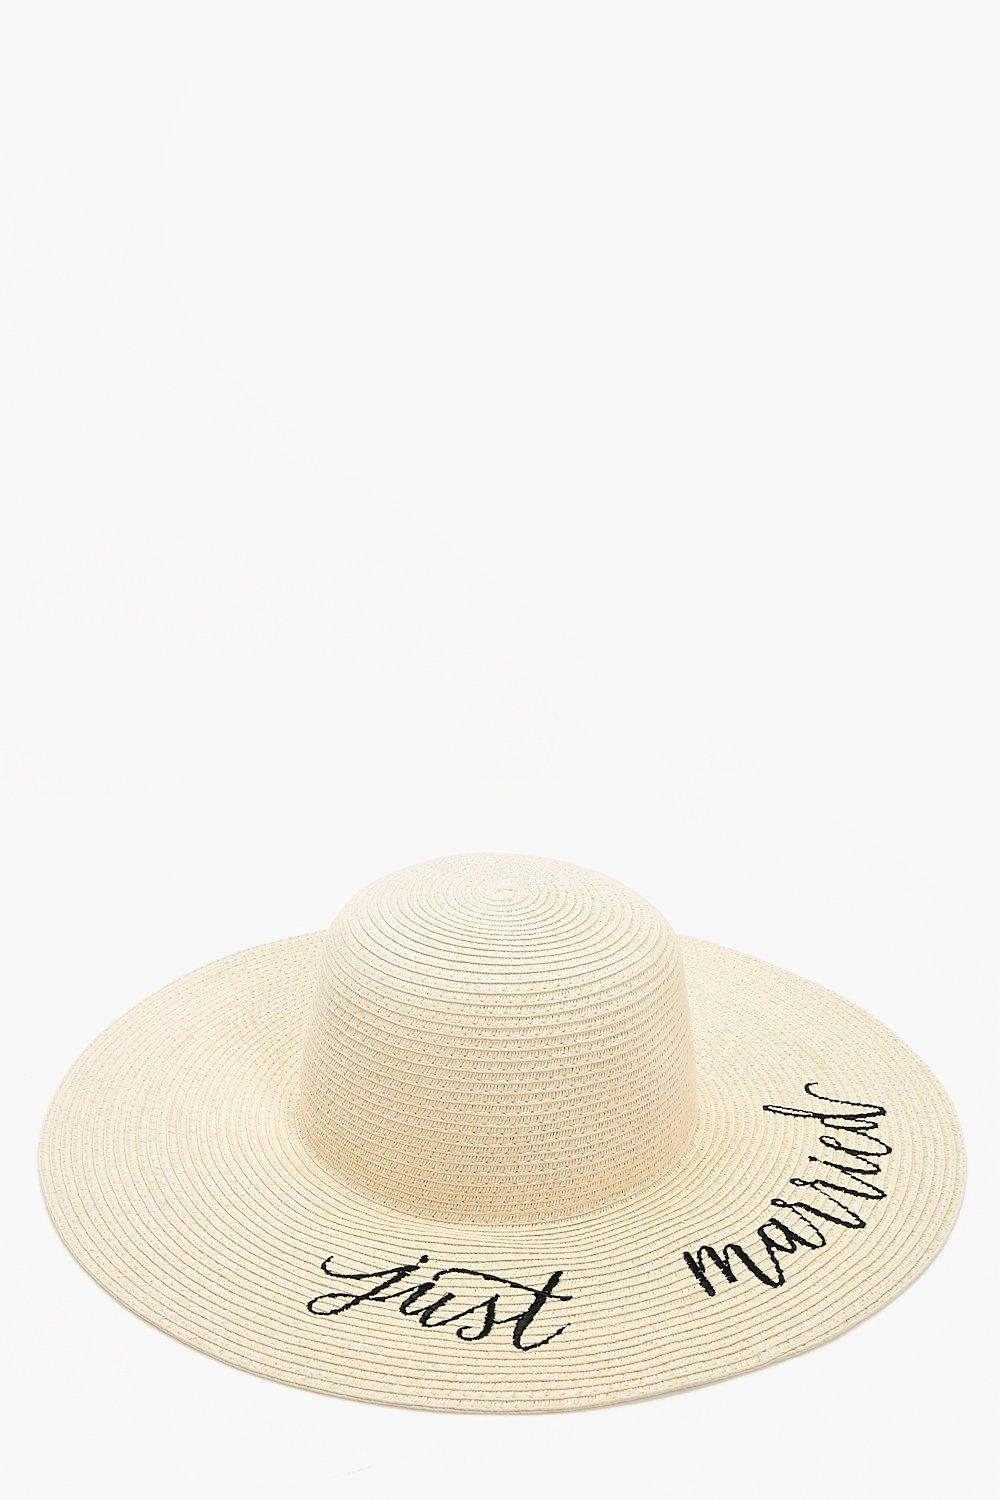 Just Married Straw Hat - natural - Emma Just Marri